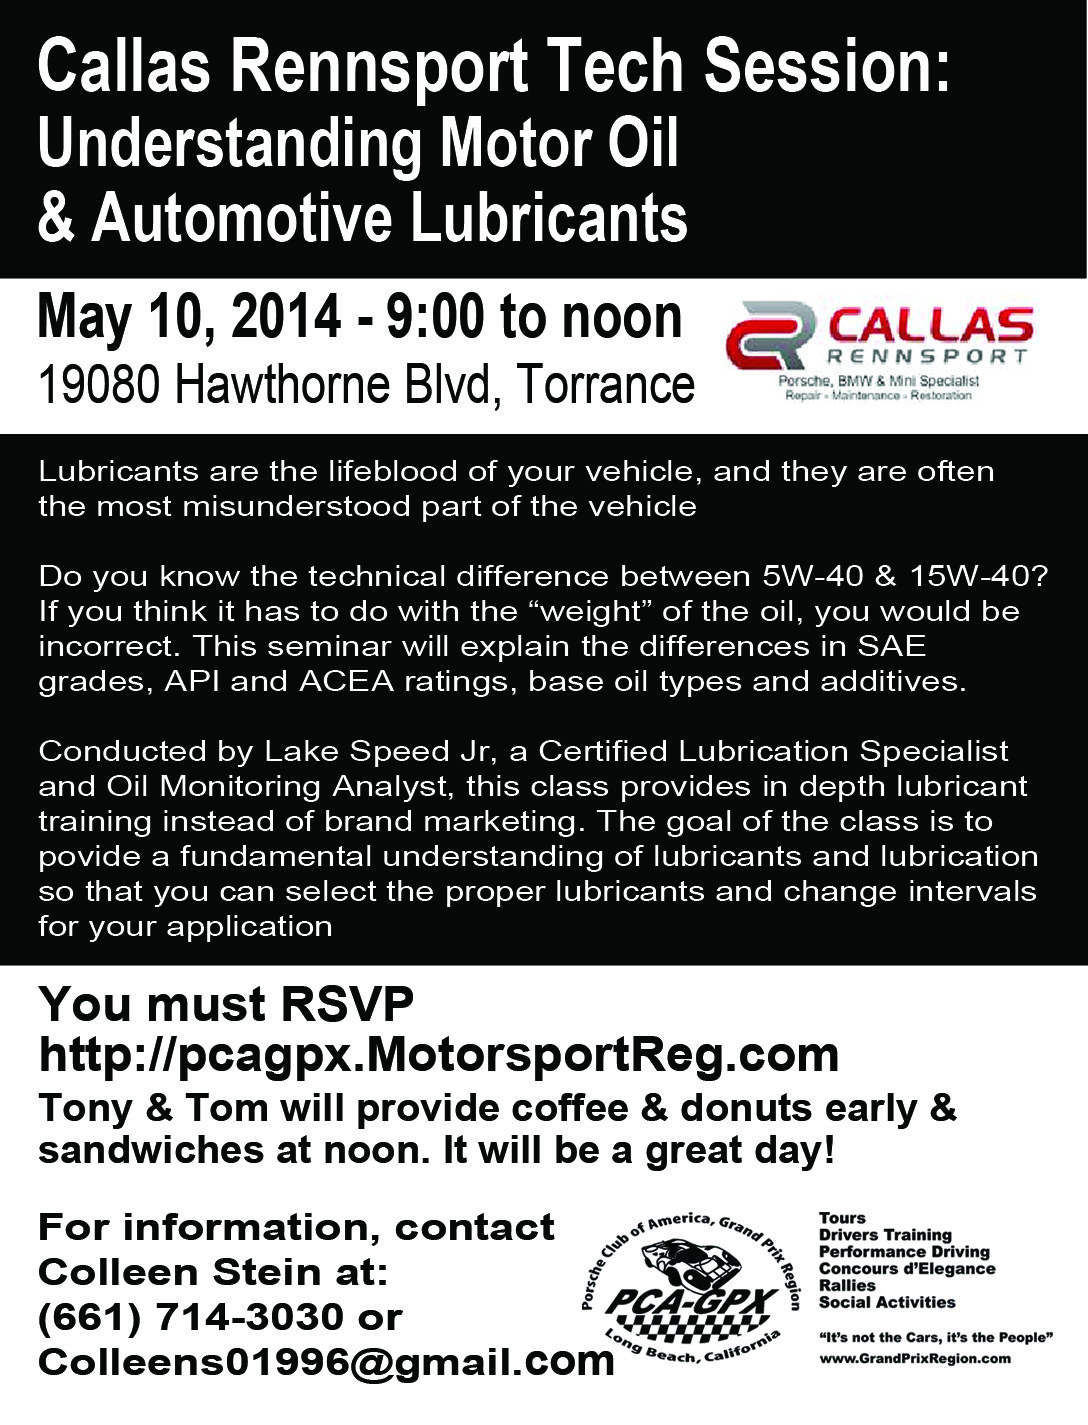 Callas Tech Session, Oils and Lubricants